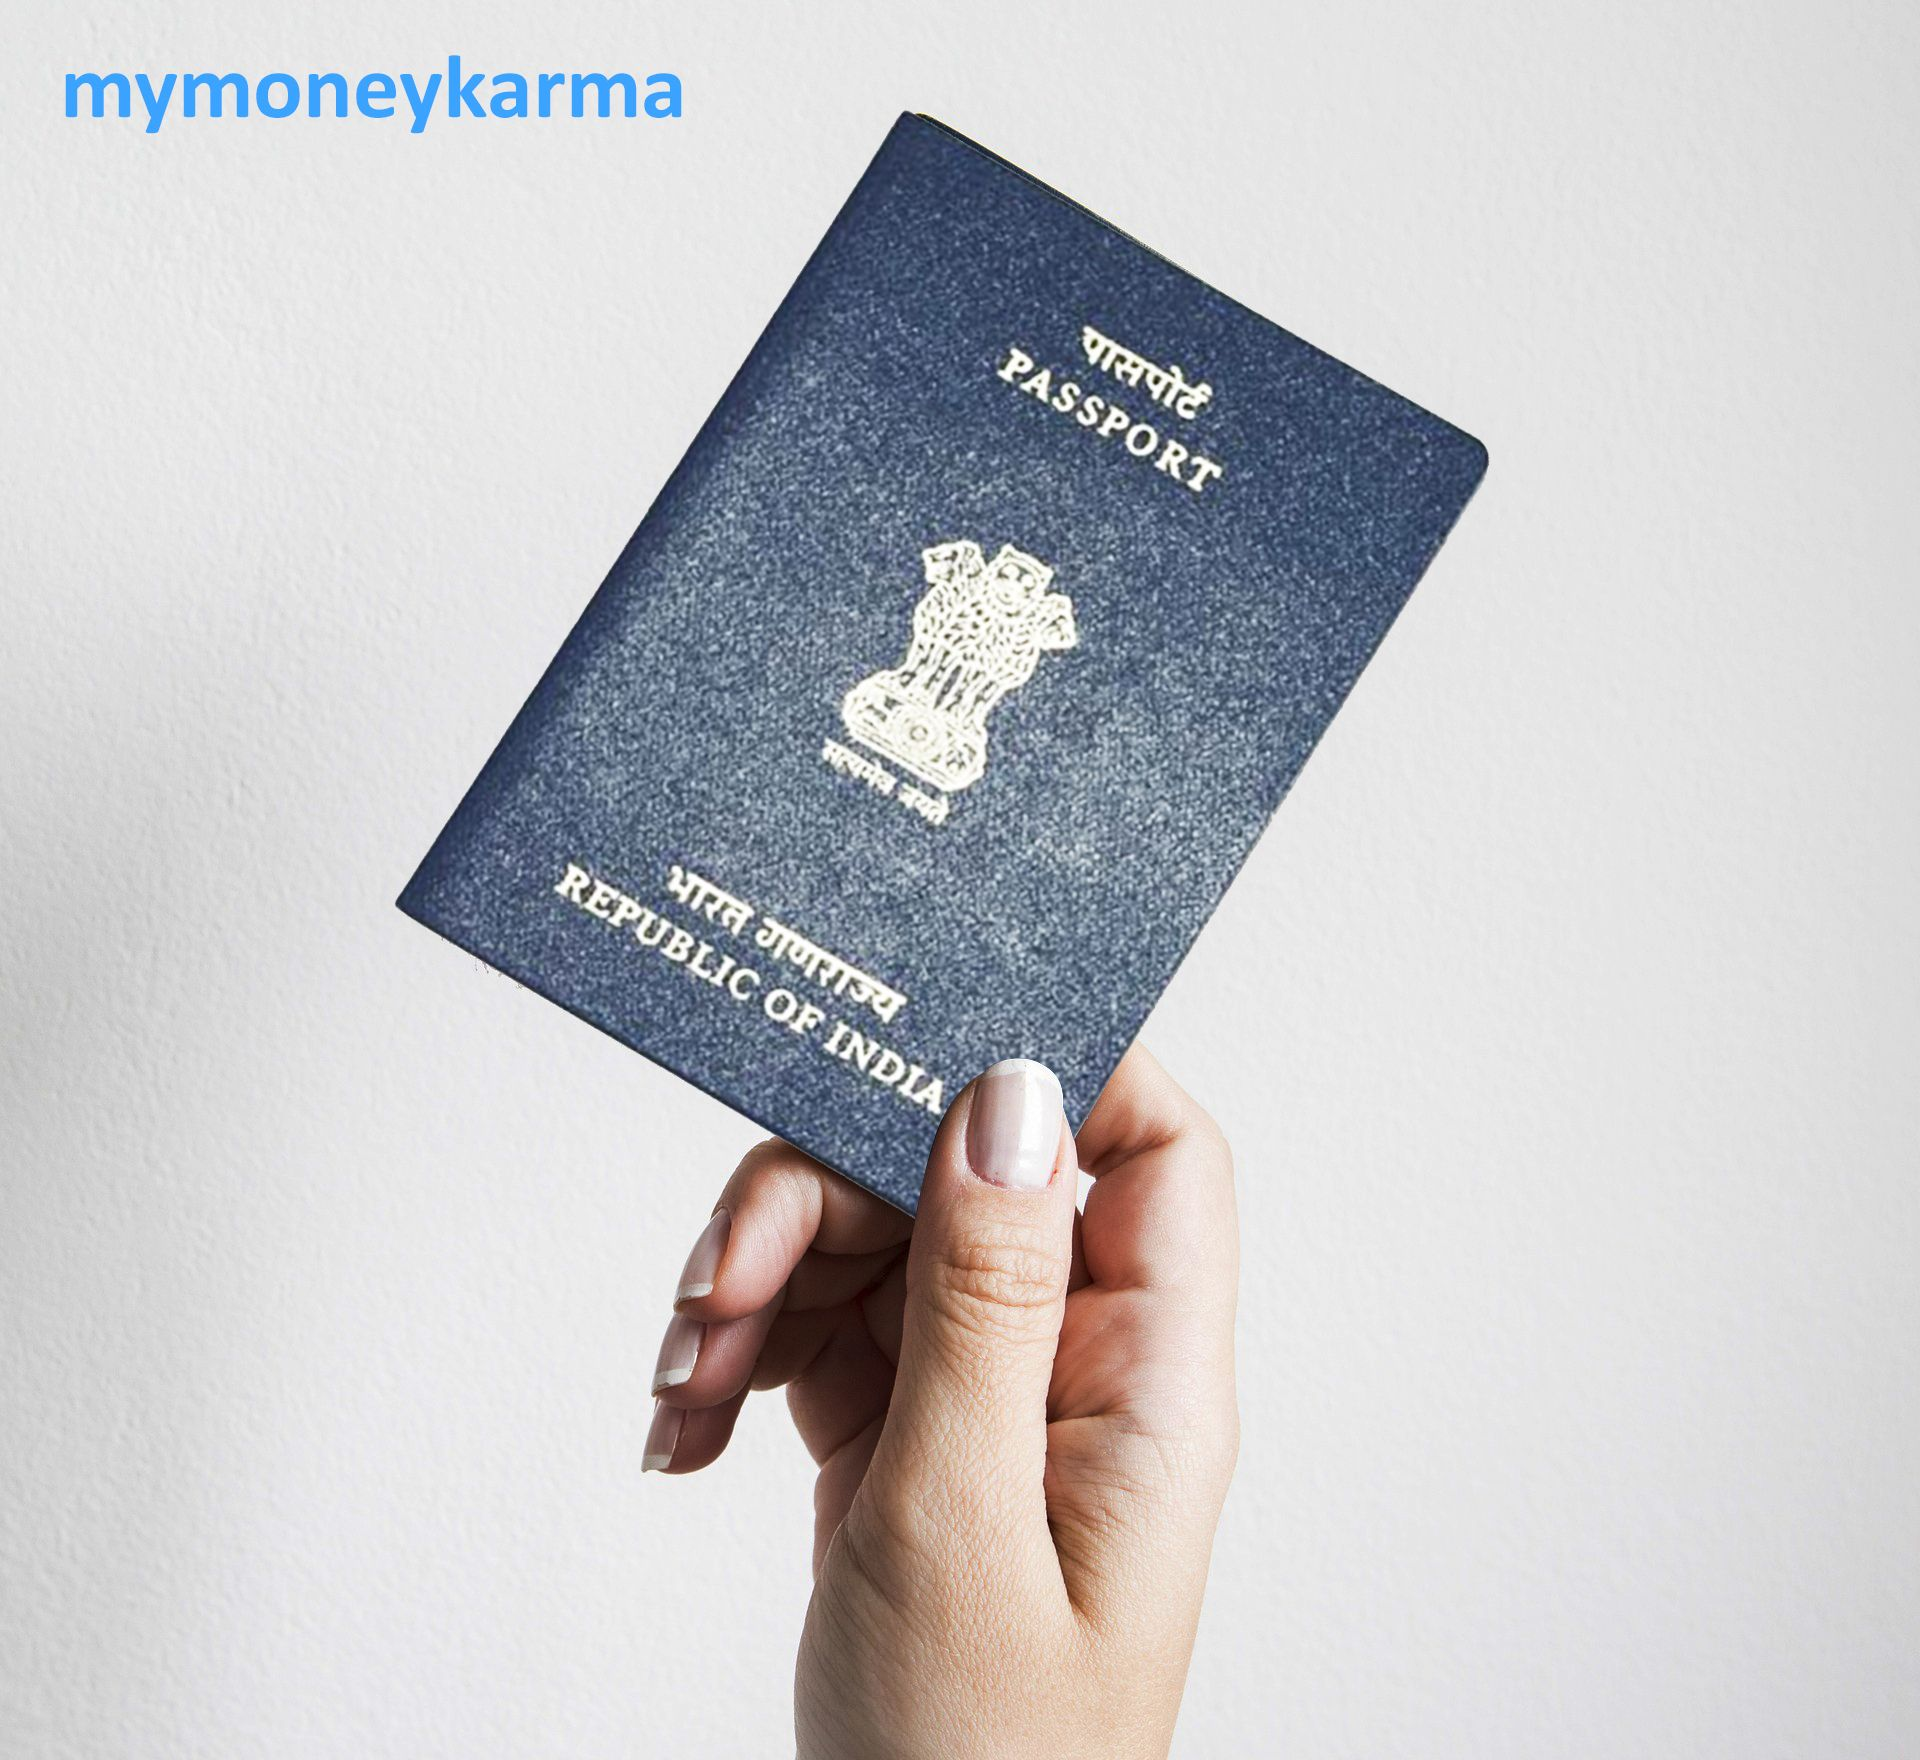 ff219c35381001d58d25594c0e0ac335 - How Long It Takes To Get Passport In Tatkal